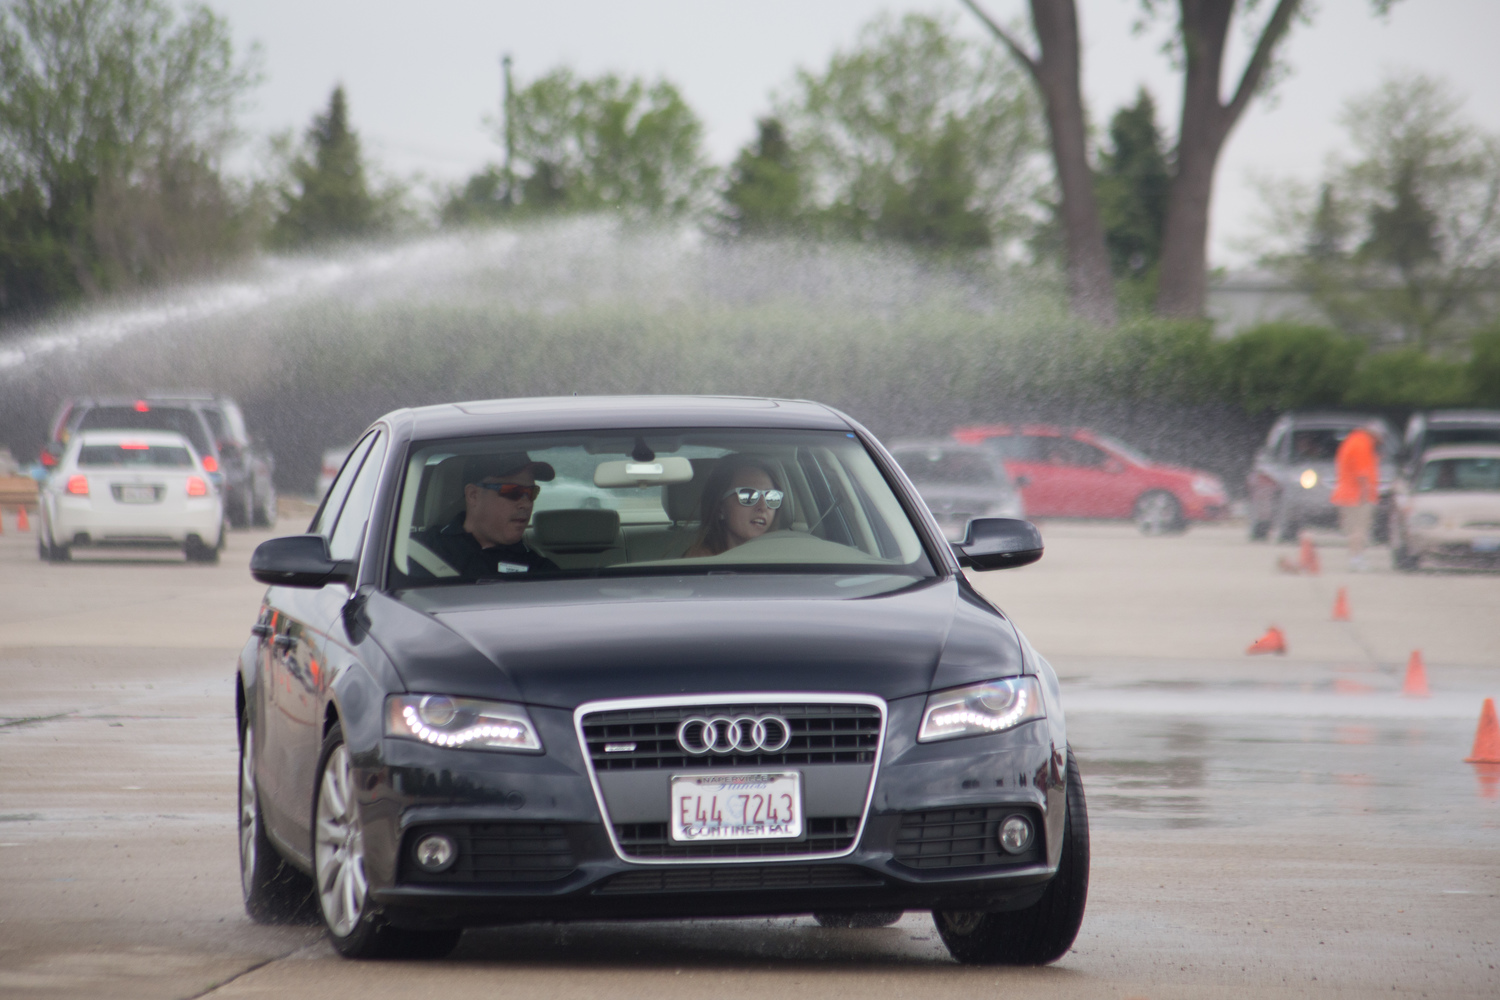 tts autobahn in the start autoevolution audi experience chicagoland dealers coupe news chicago